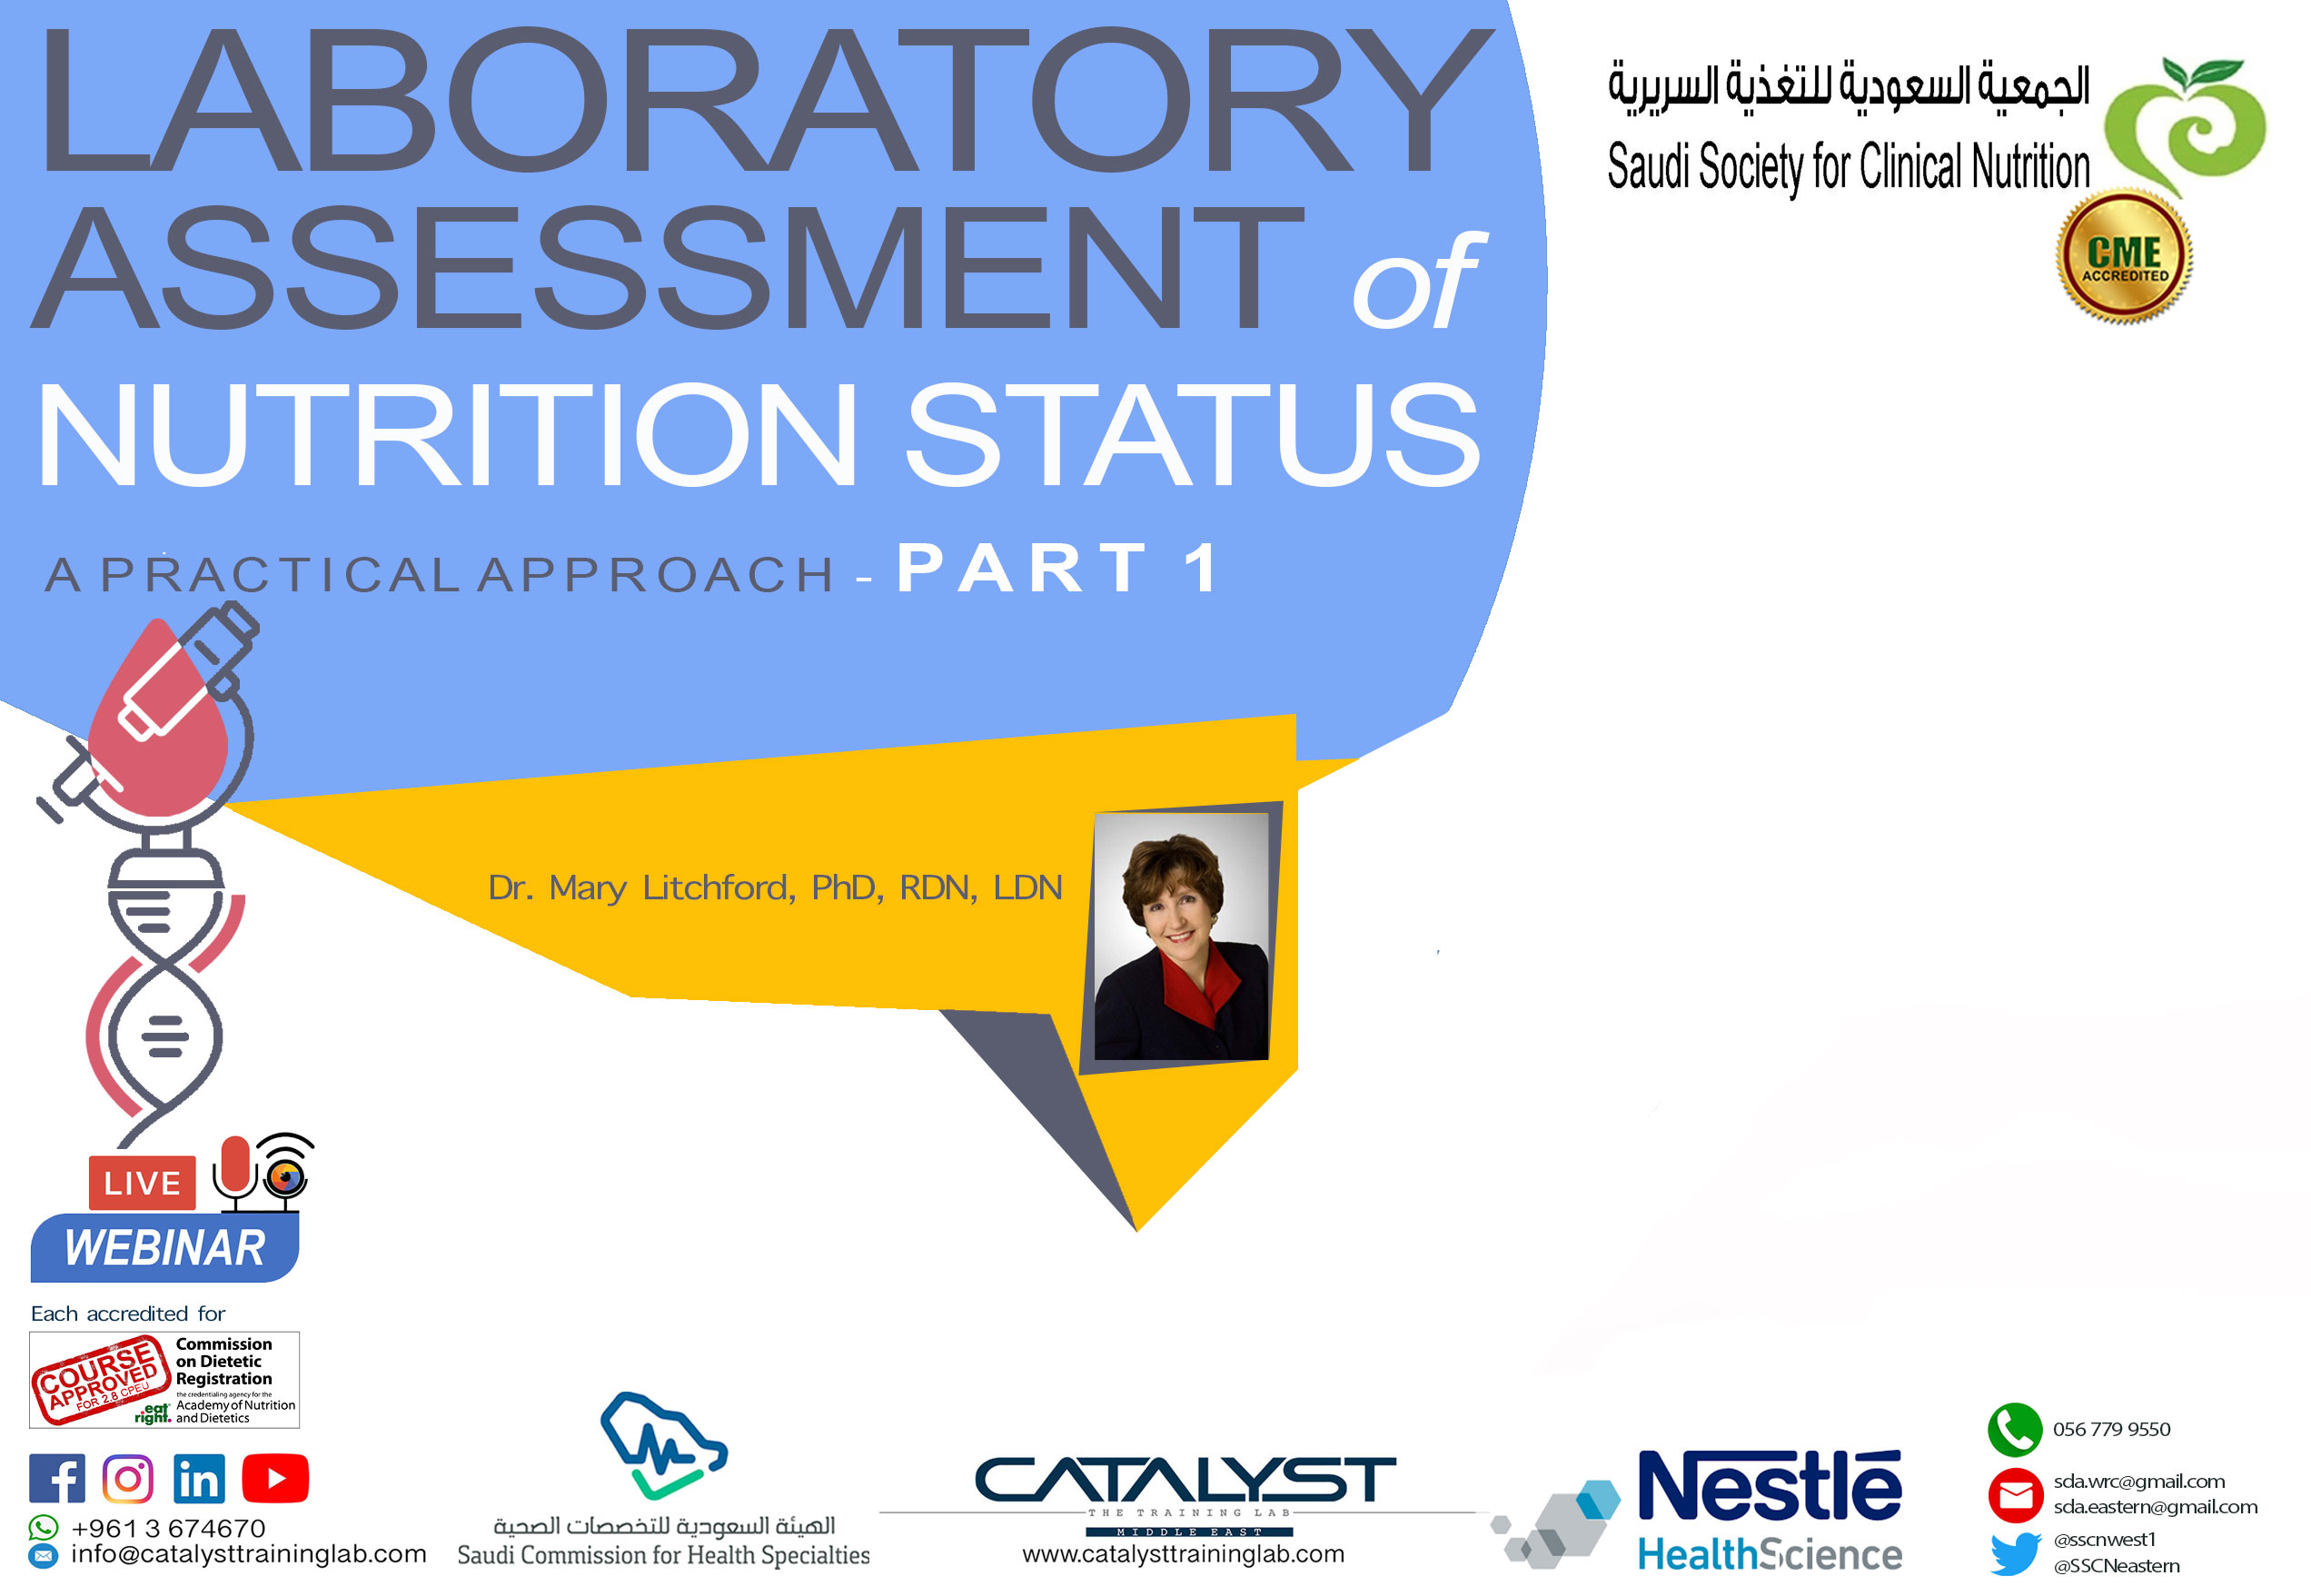 Laboratory Assessment of Nutrition Status - Part 1